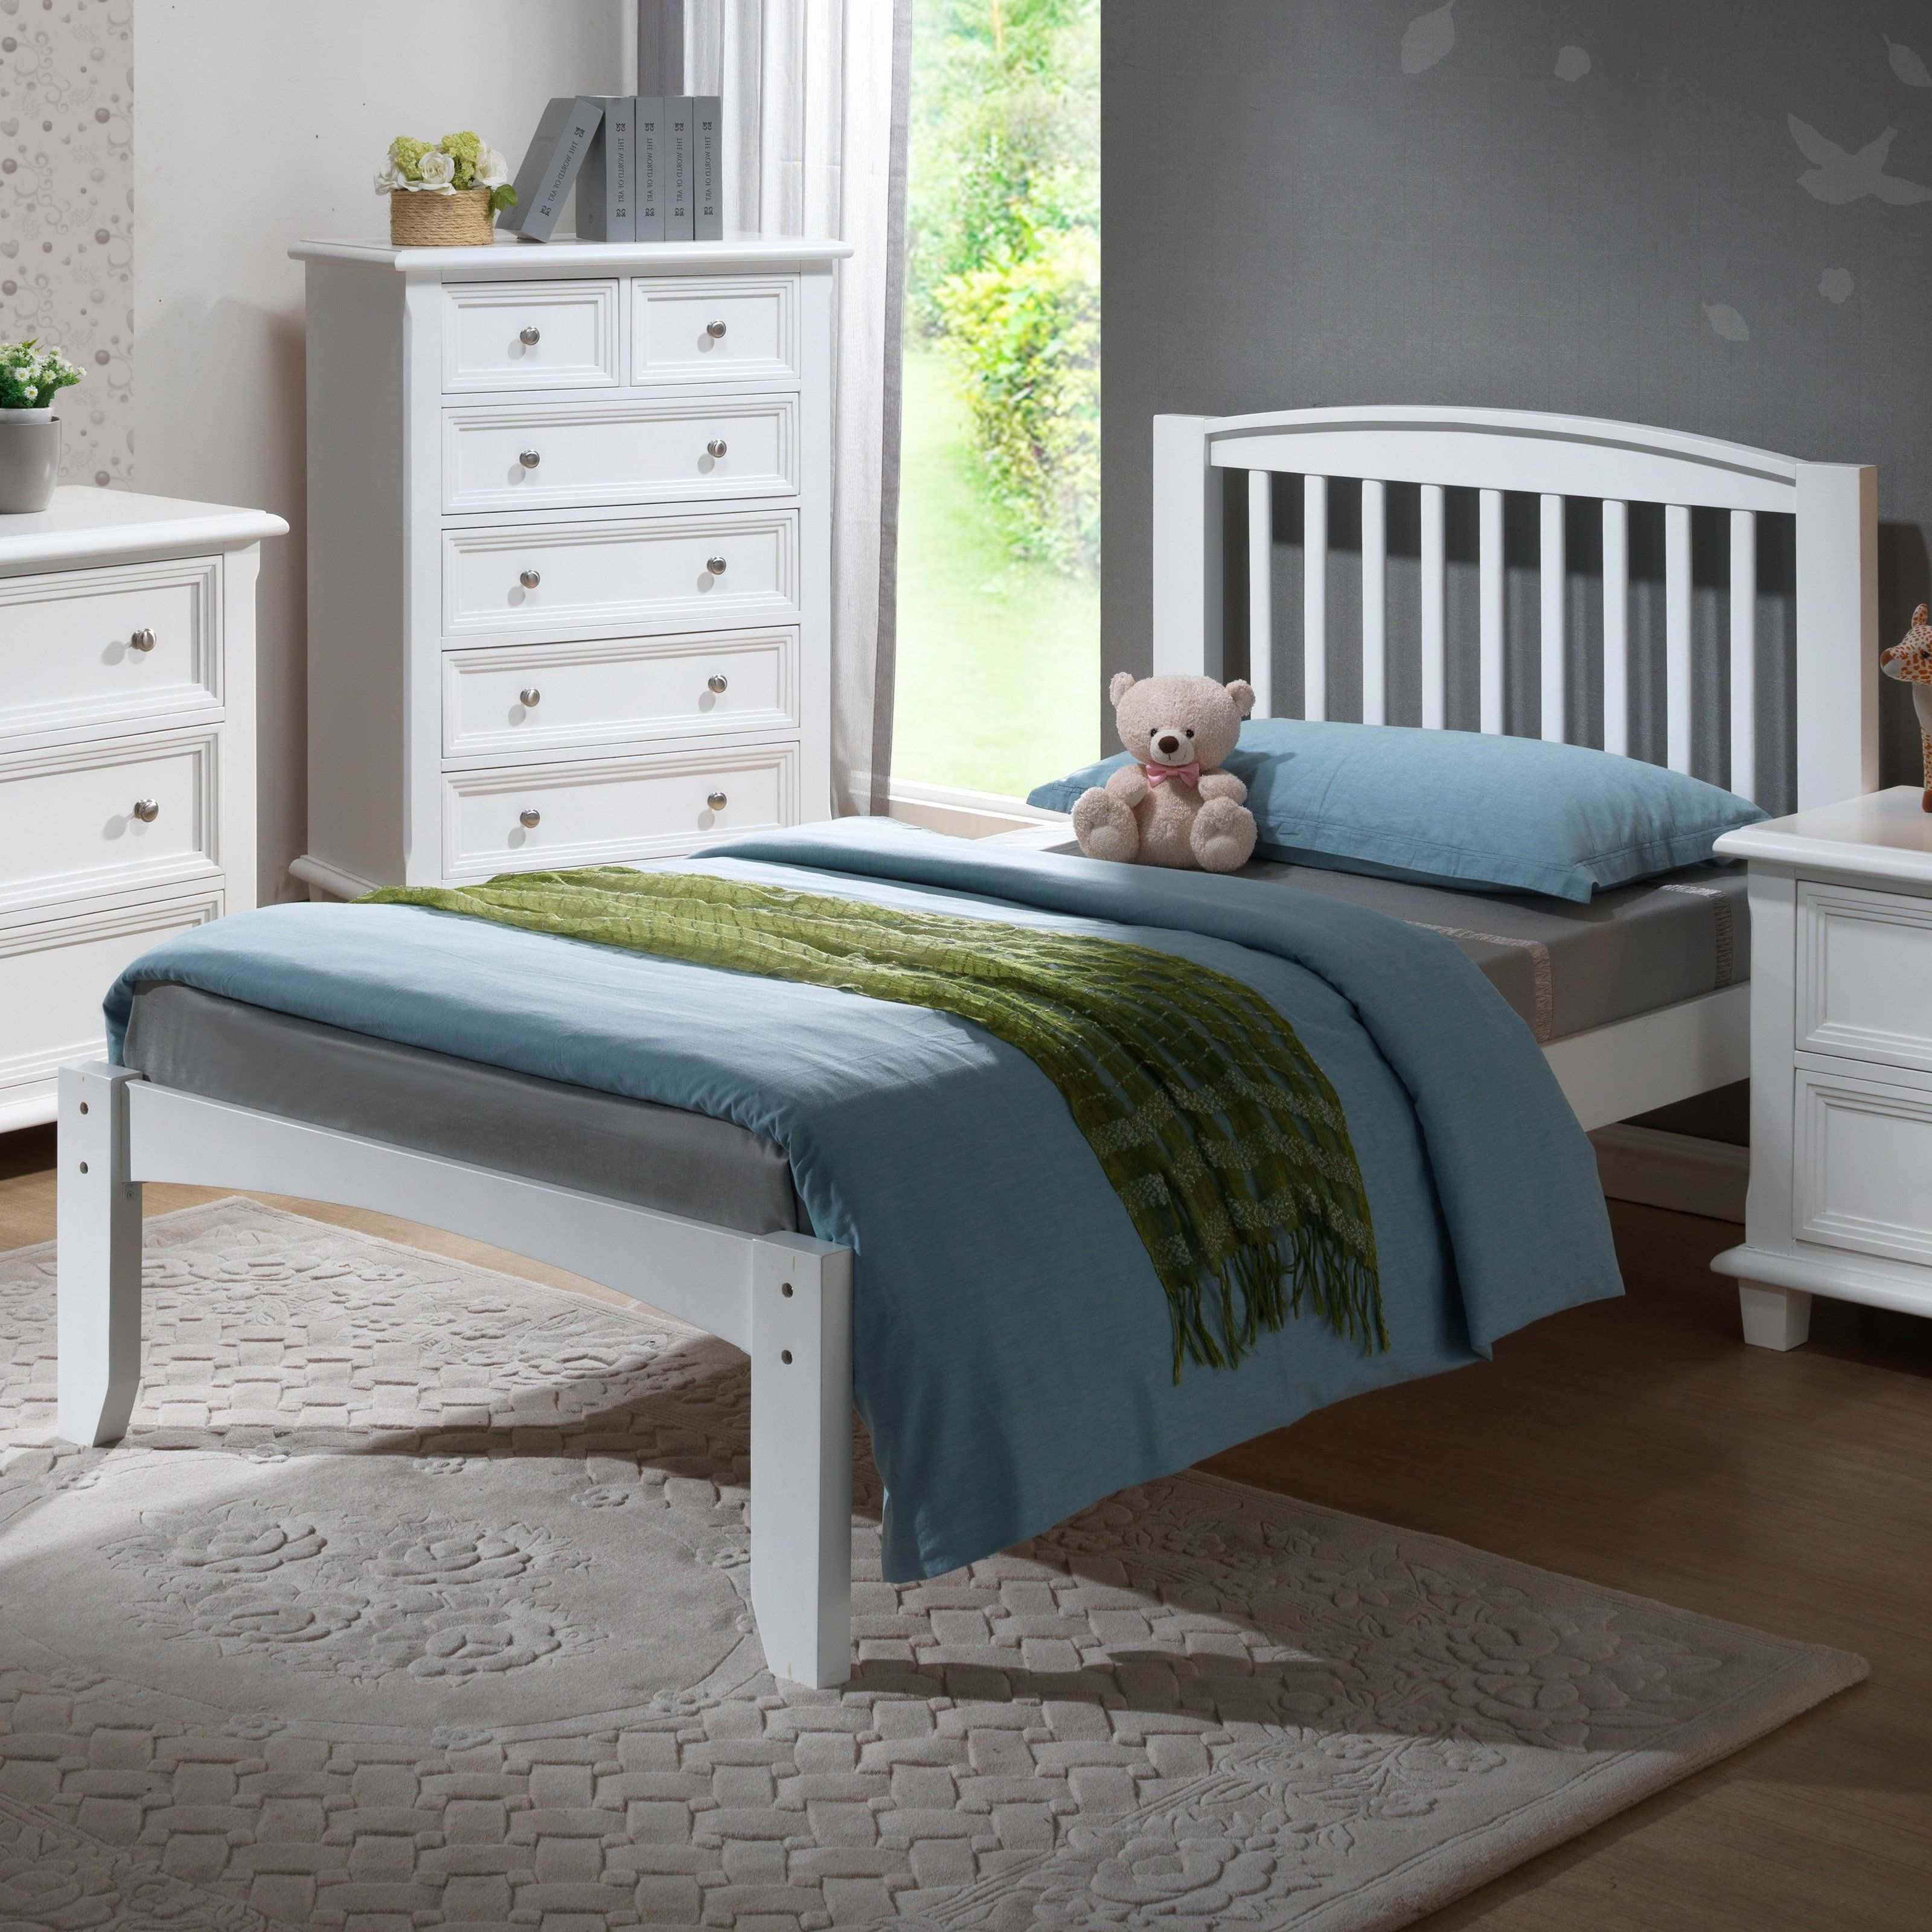 of bed ideas sets furniture stylish bedroom twin